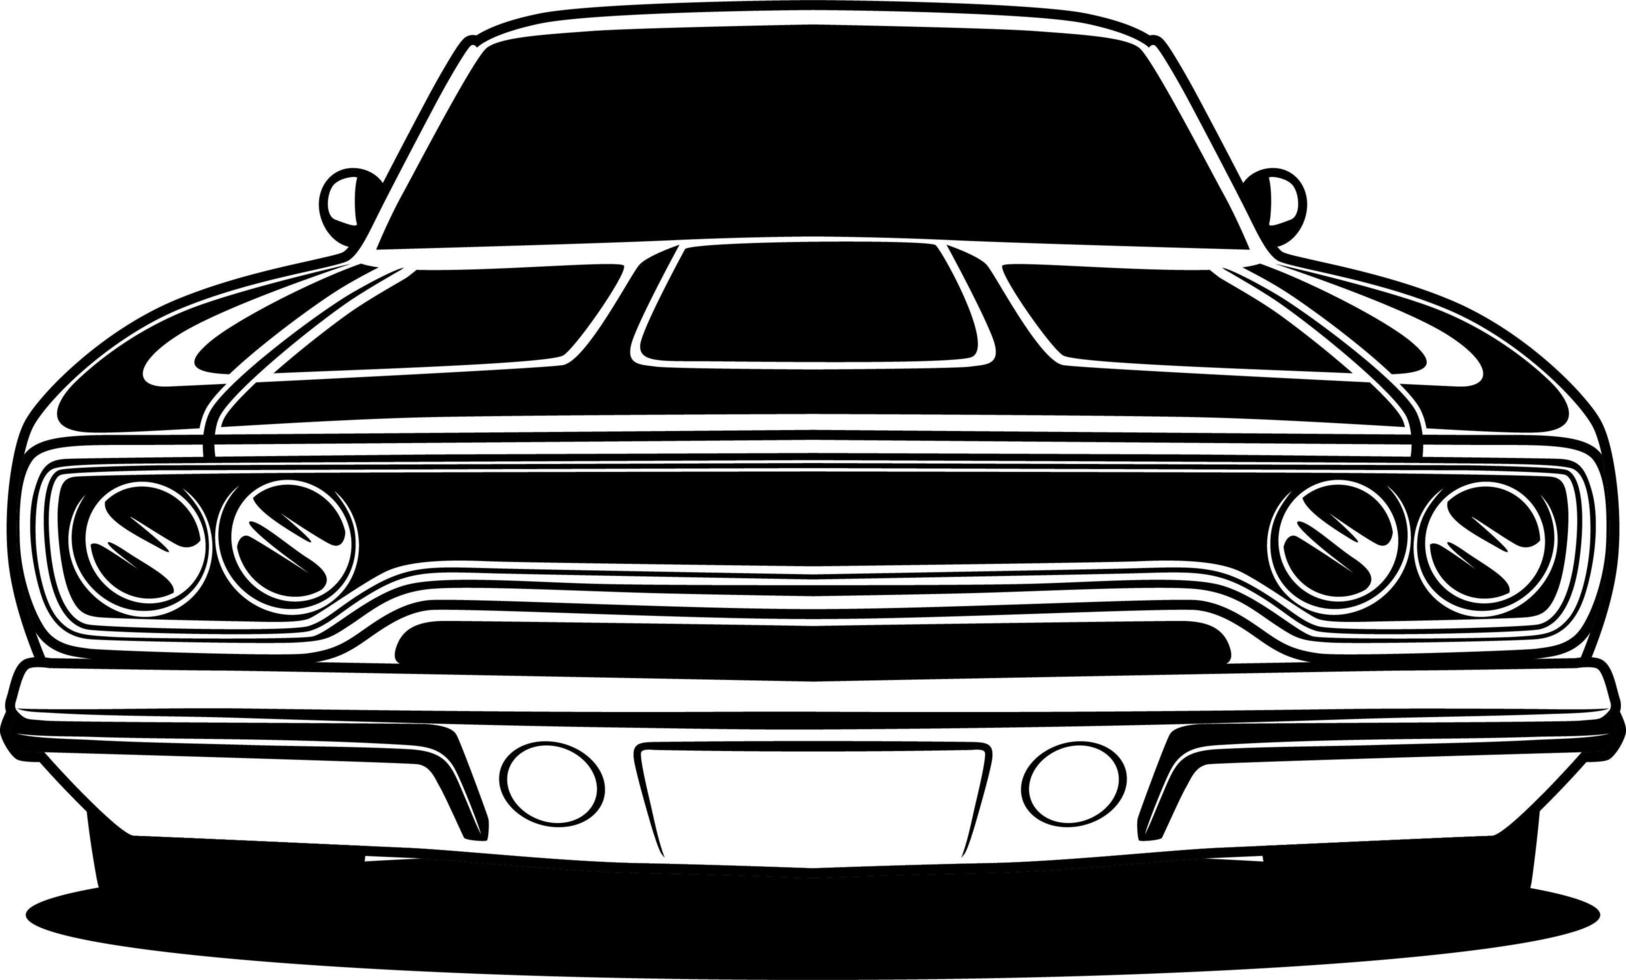 Black and white car front drawing vector